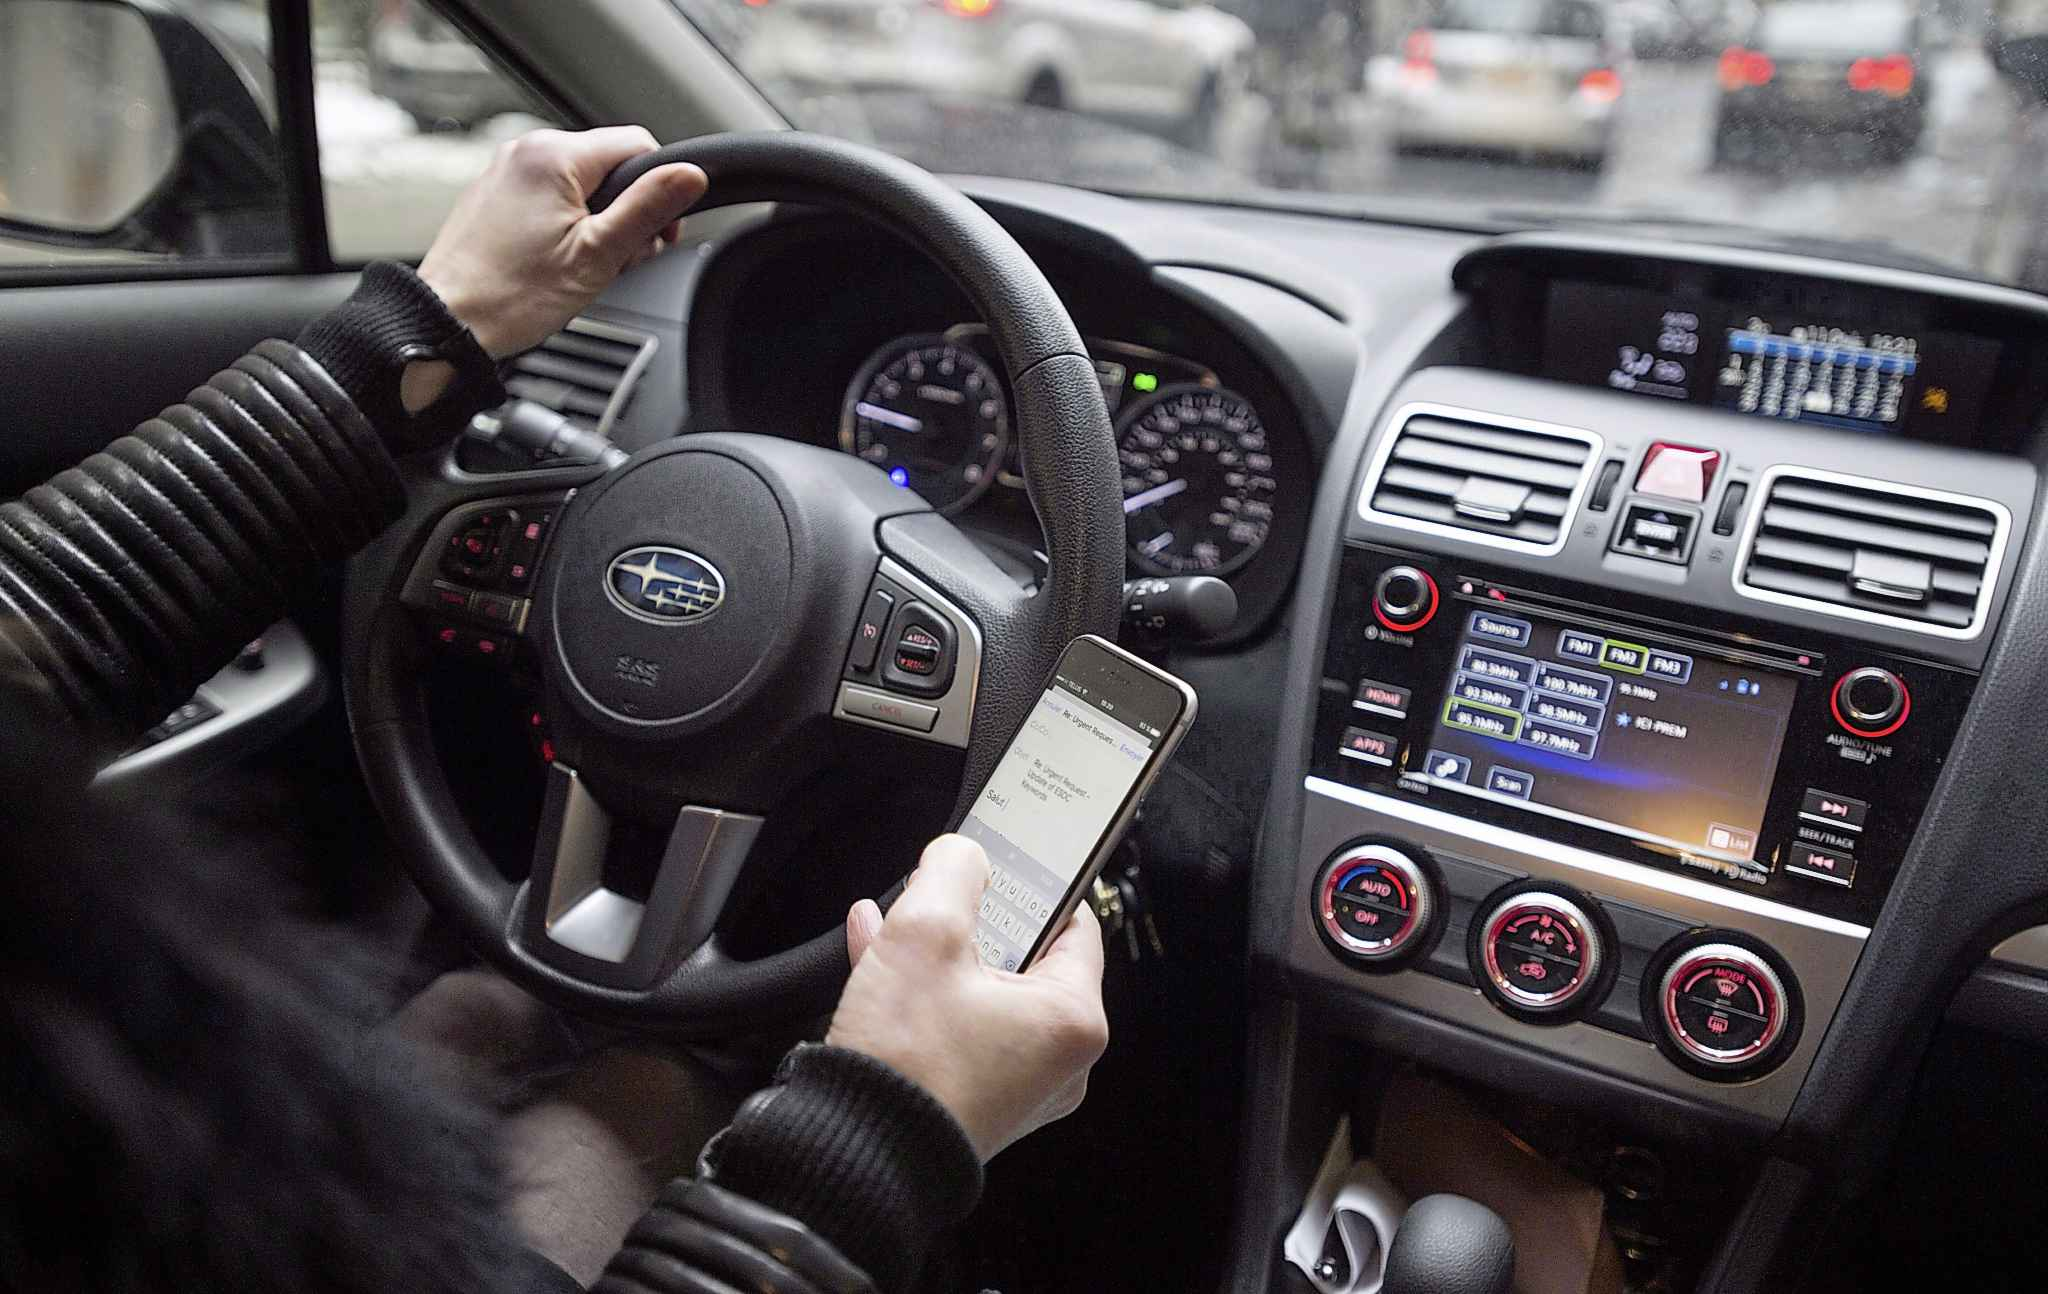 First-time offenders will be fined $672 and receive an immediate three-day licence suspension and a penalty of five demerits on their driver's licence, followed by a $50 licence-reinstatement fee. (Paul Chiasson / The Canadian Press)